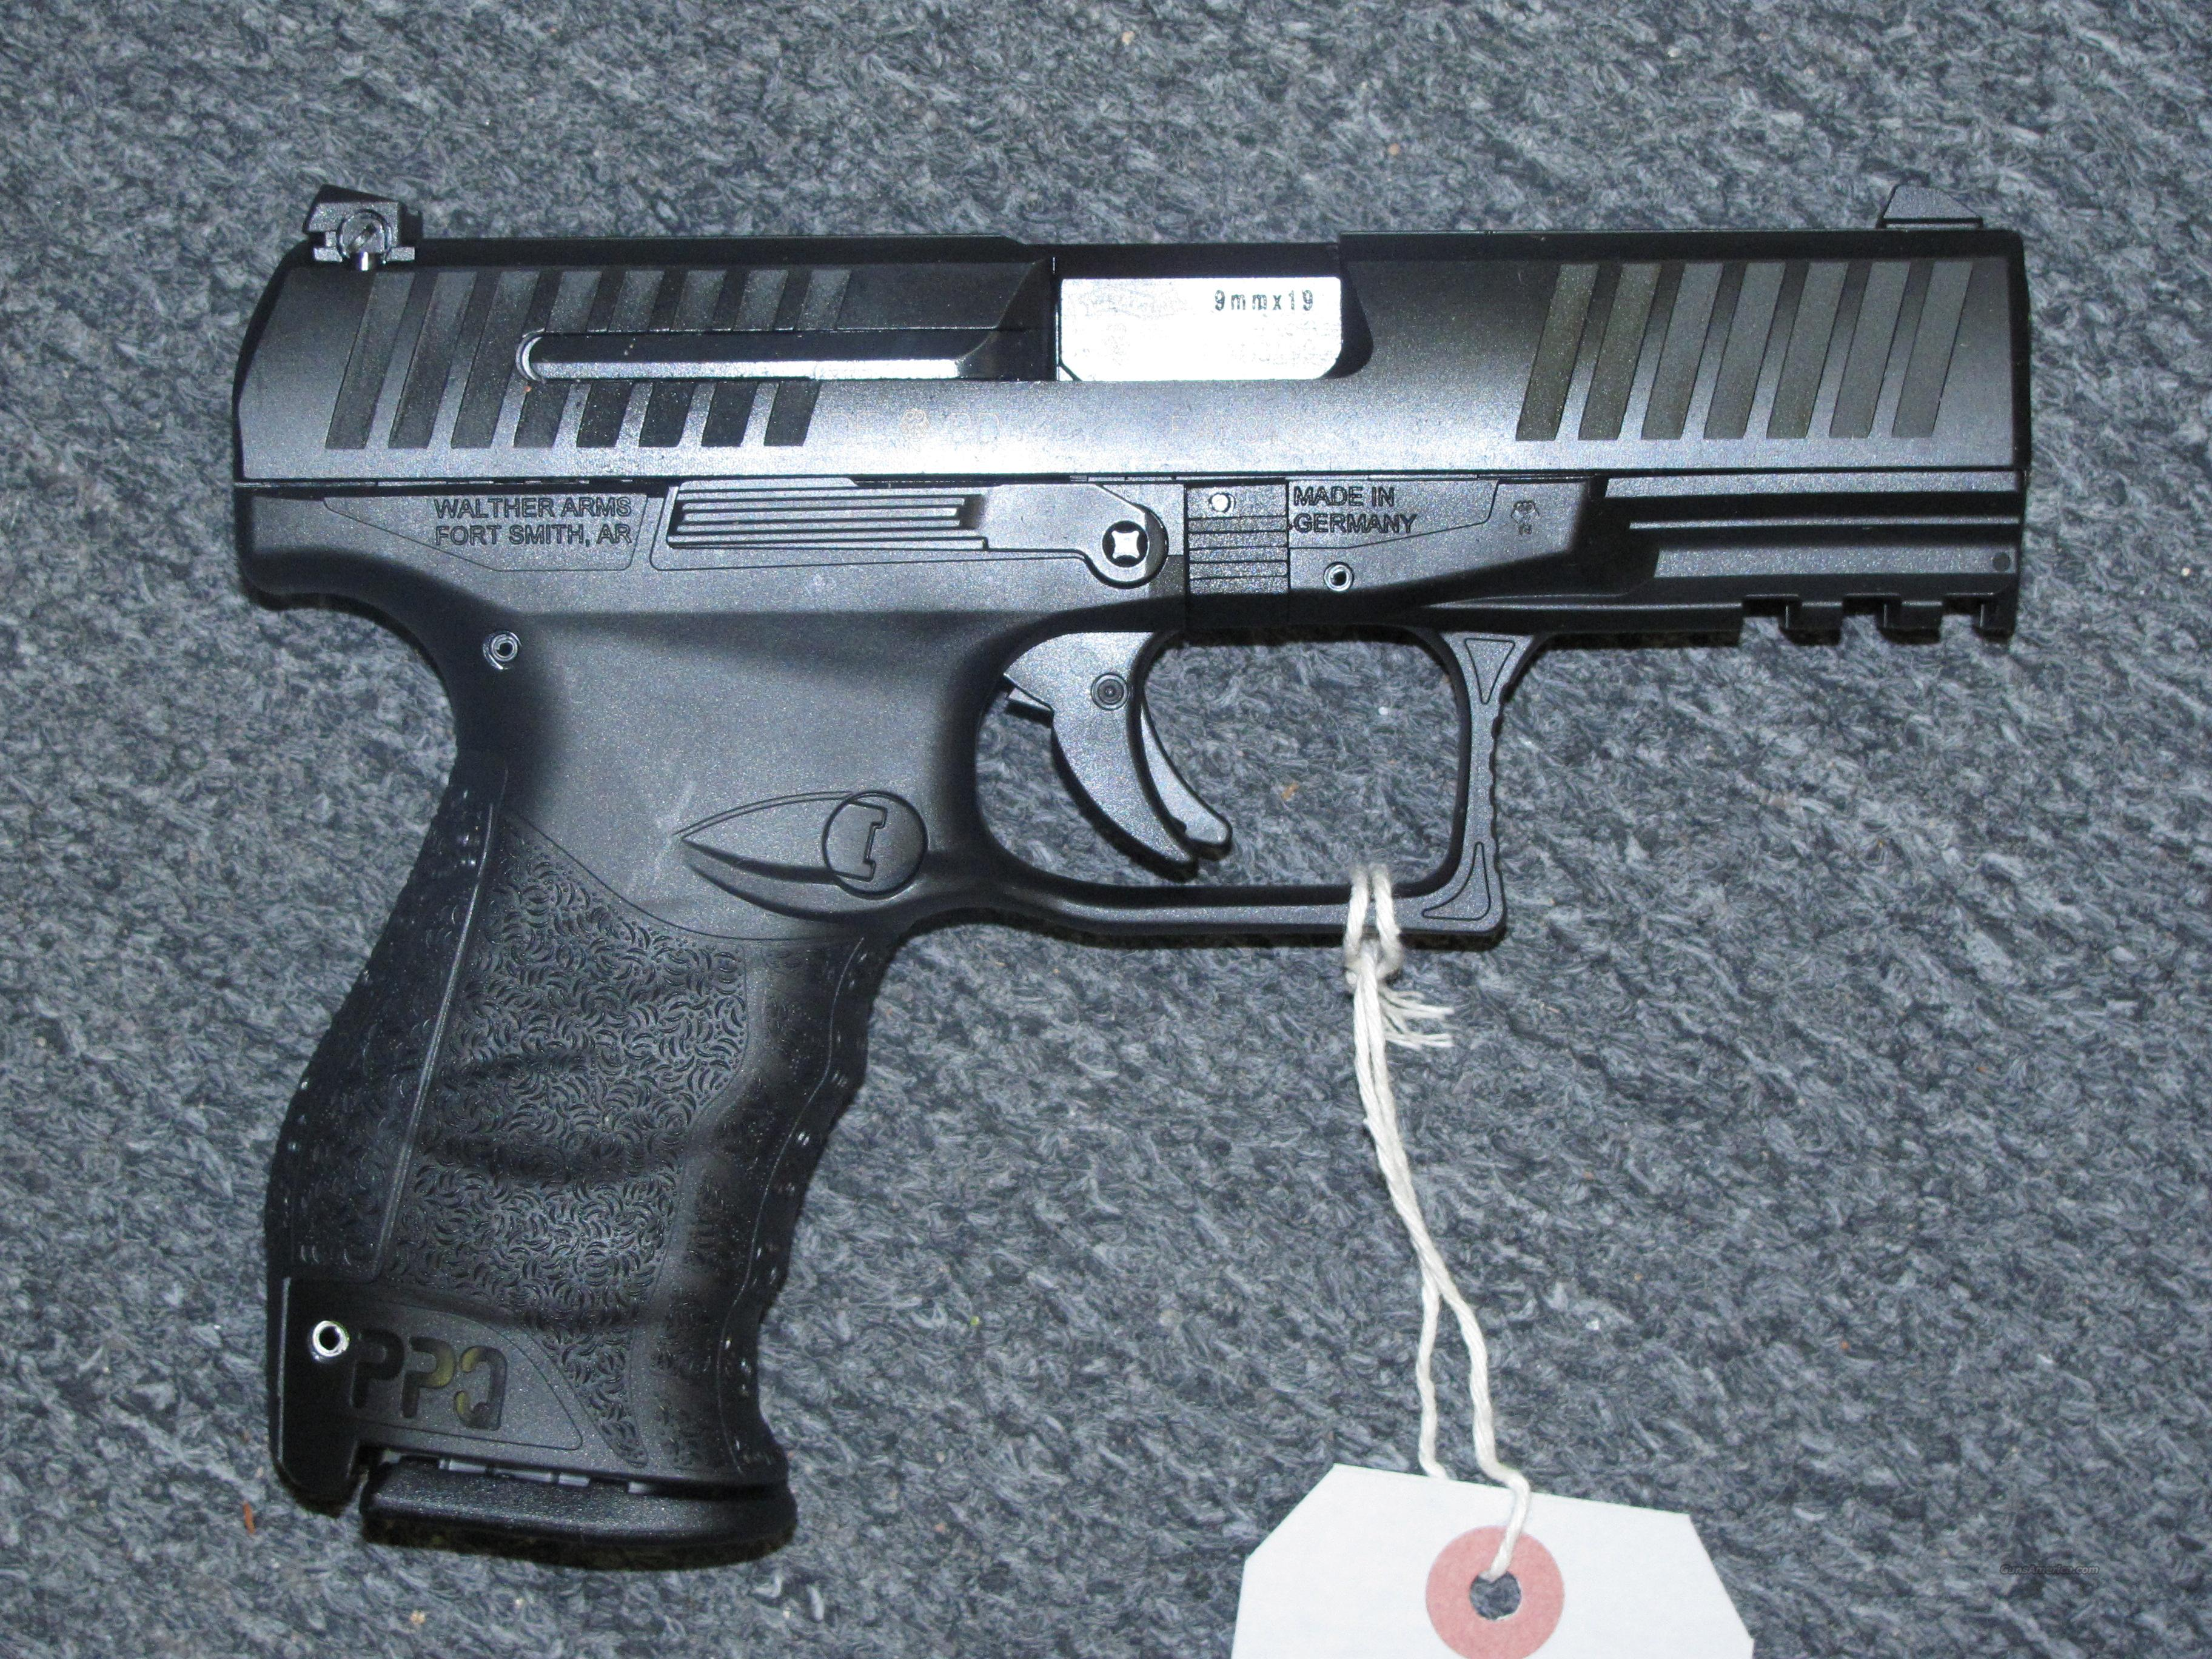 PPQ w/2 15 rd mags  Guns > Pistols > Walther Pistols > Post WWII > P99/PPQ